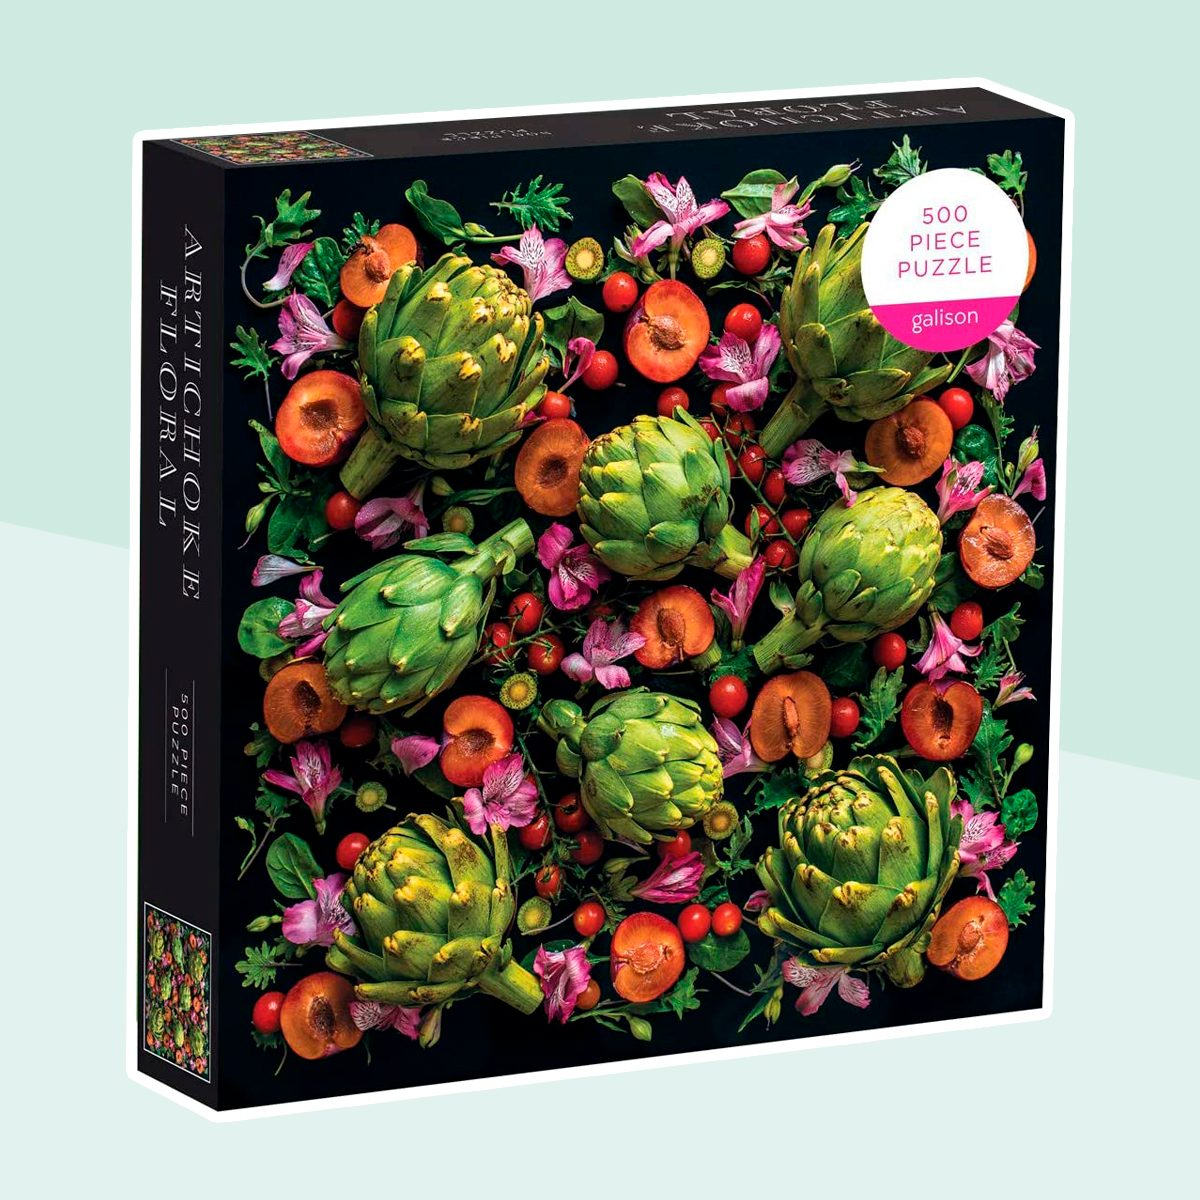 Galison 500 Piece Artichoke Floral Jigsaw Puzzle for Adults and Families, Challenging Plant Puzzle with Floral Artichoke Theme